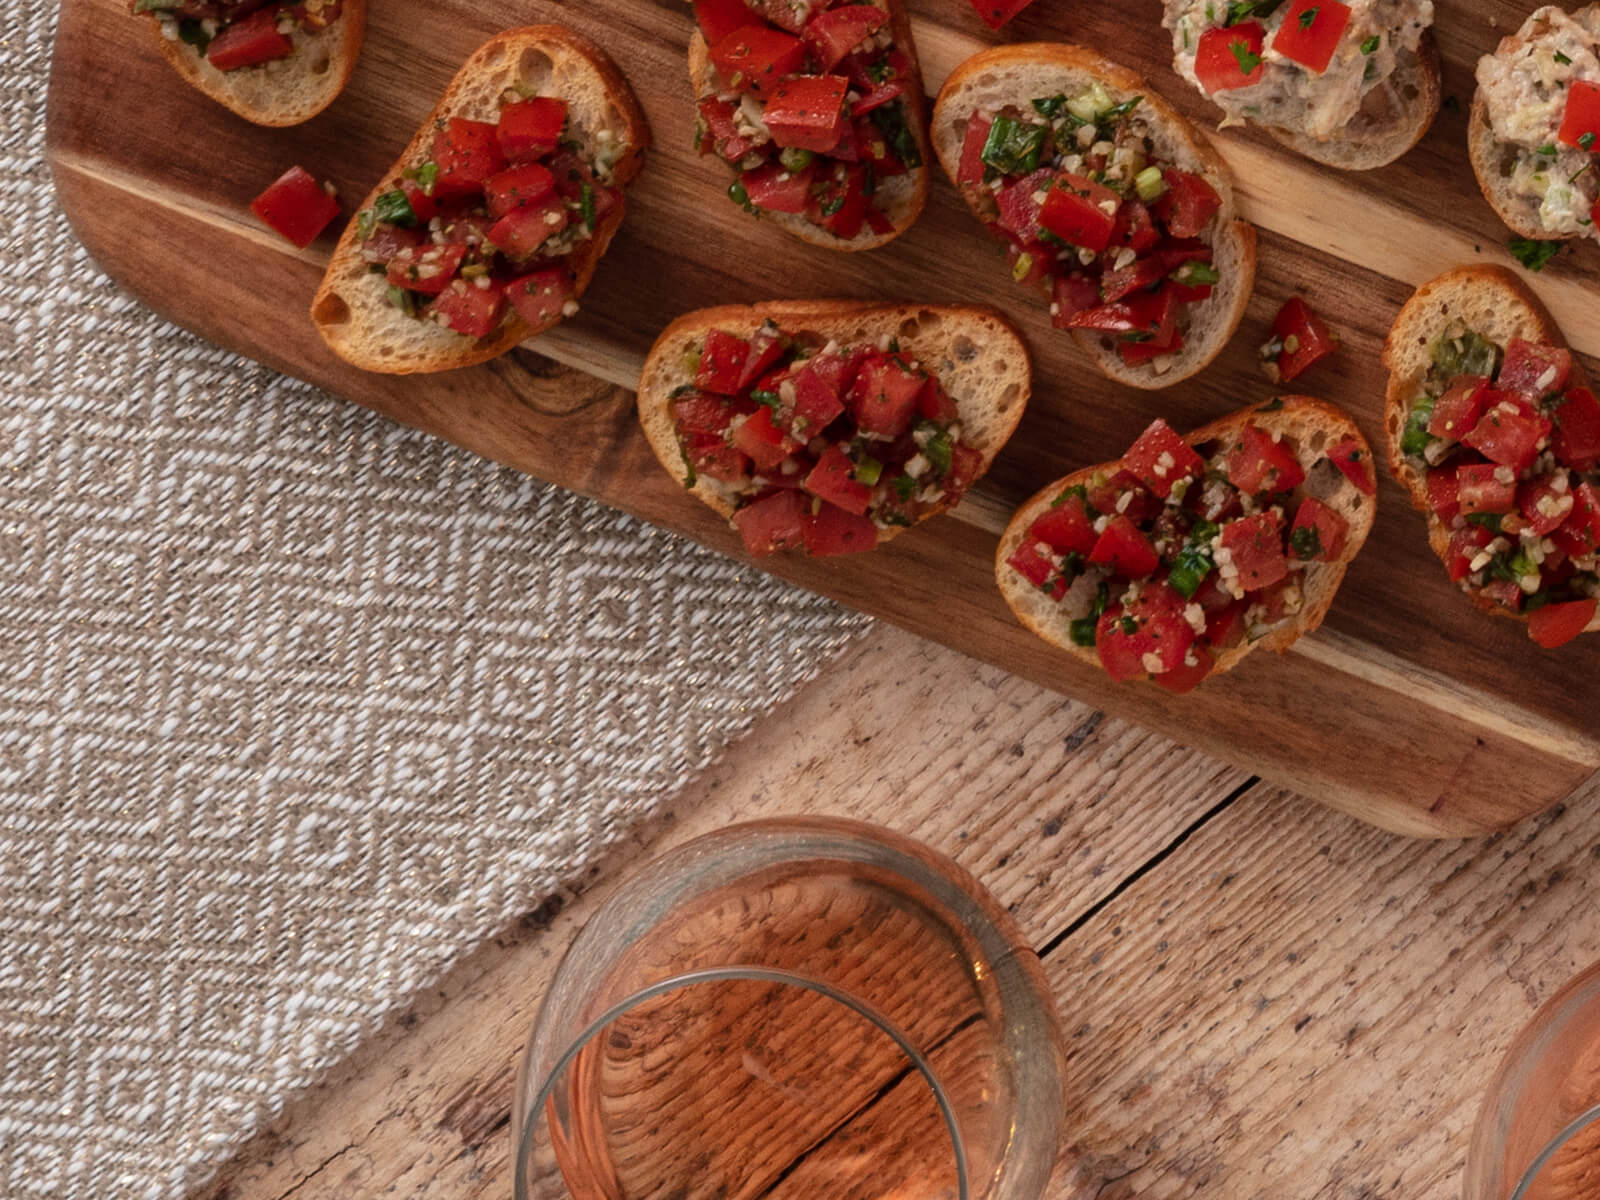 Balsamic Bruschetta and Garlic Crostini